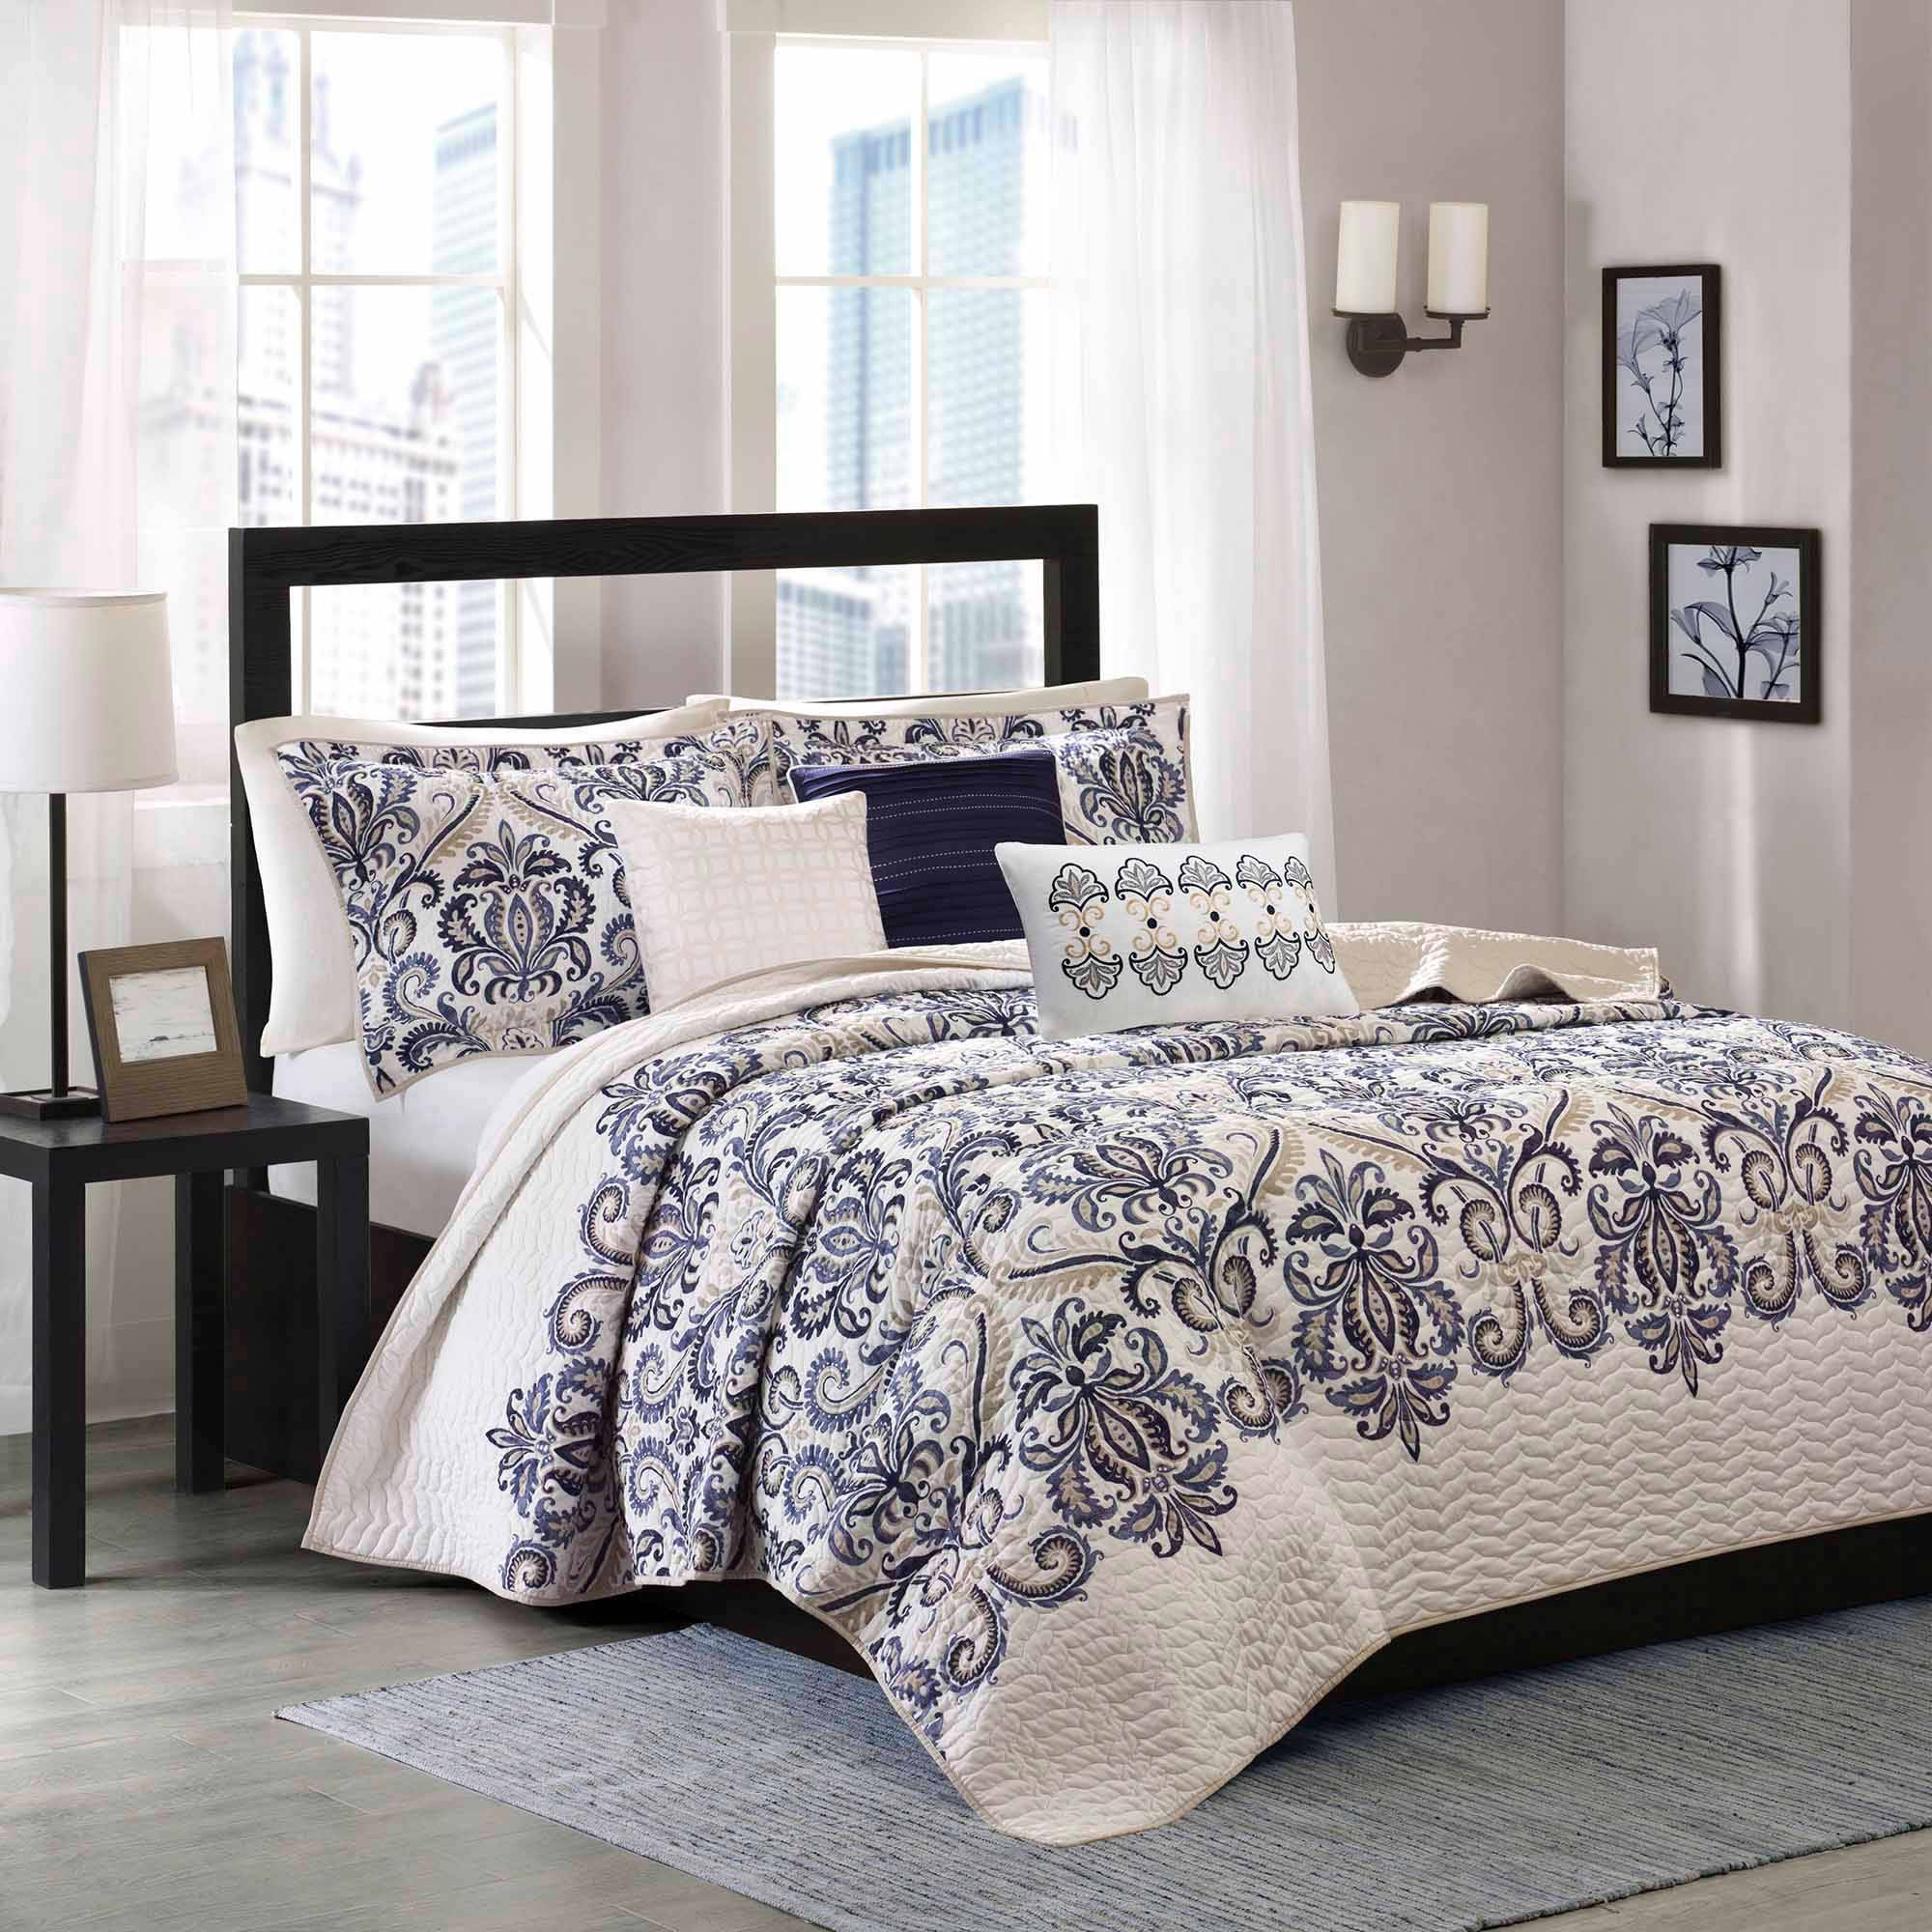 cal licous twin comforter pictures california denver quilt walmart sets king beautiful bedroom home trends broncos comforters detail bedding lico